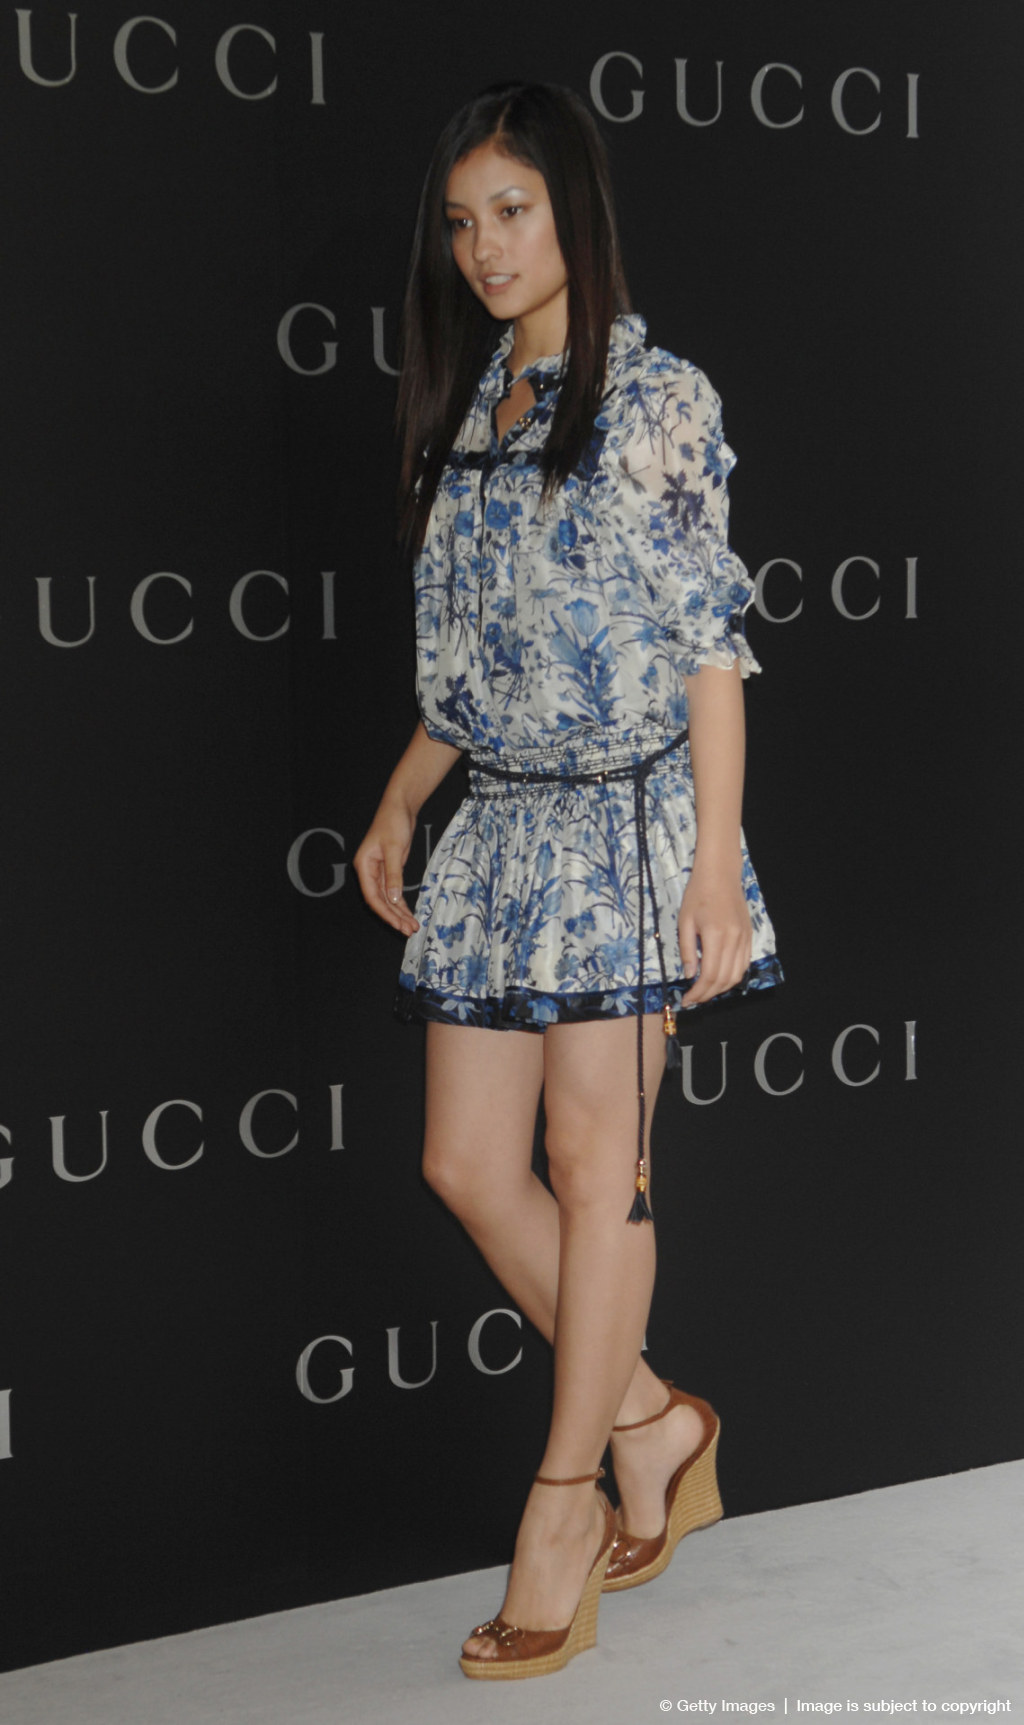 GUCCI Ginza Flagship Store Opening Reception Party - Arrivals